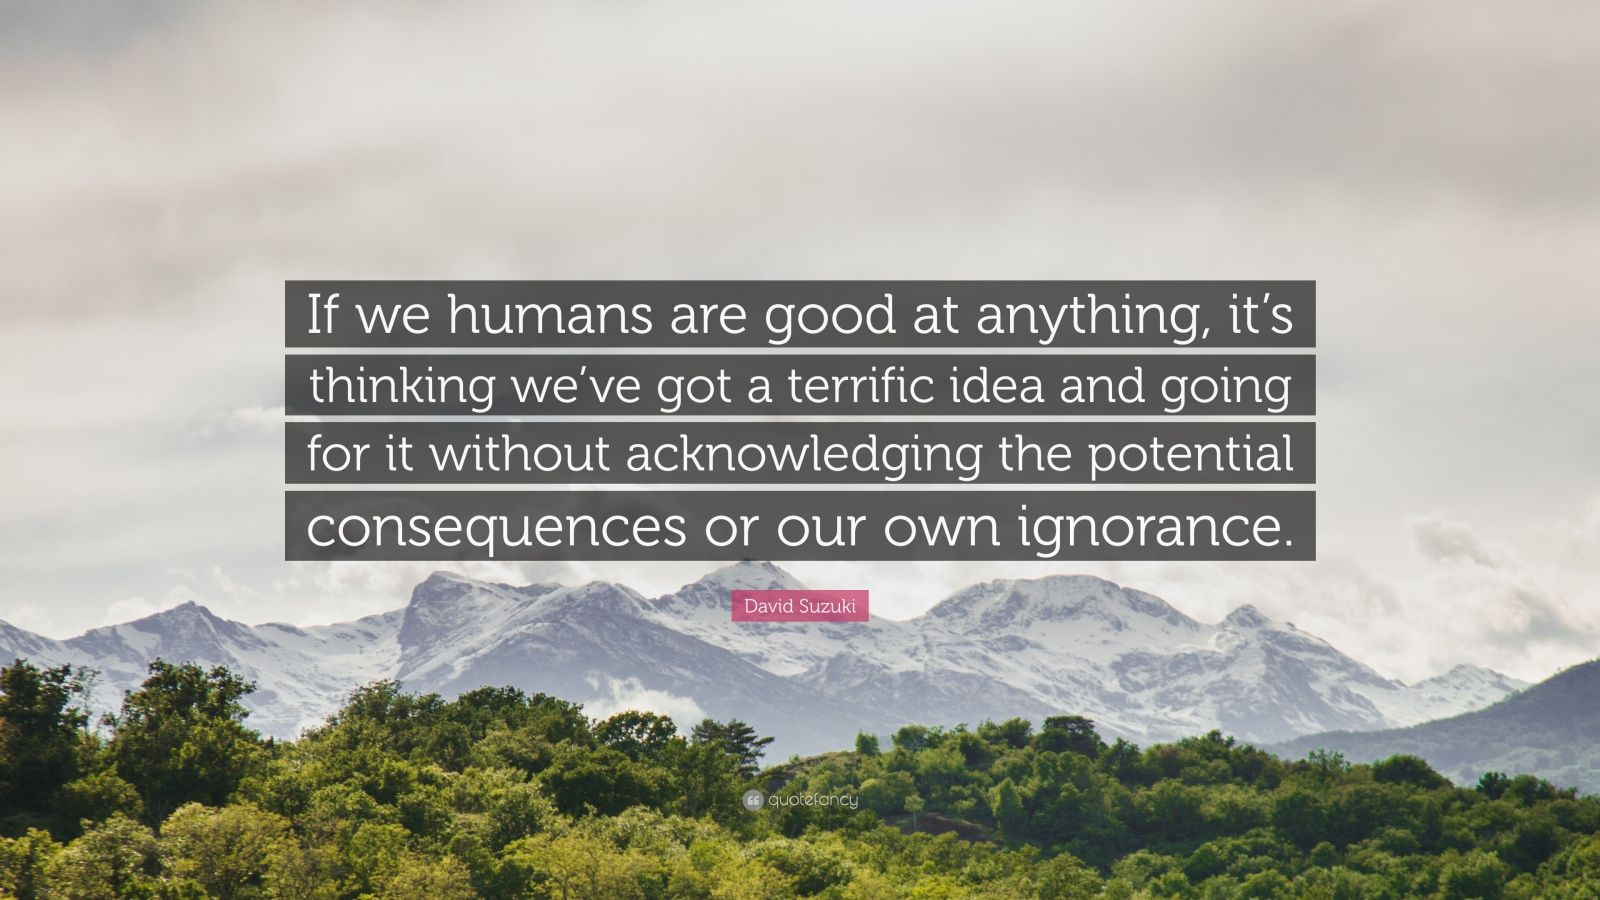 """David Suzuki Quote: """"If we humans are good at anything, it's thinking we've got a terrific idea and going for it without acknowledging the potential consequences or our own ignorance."""""""